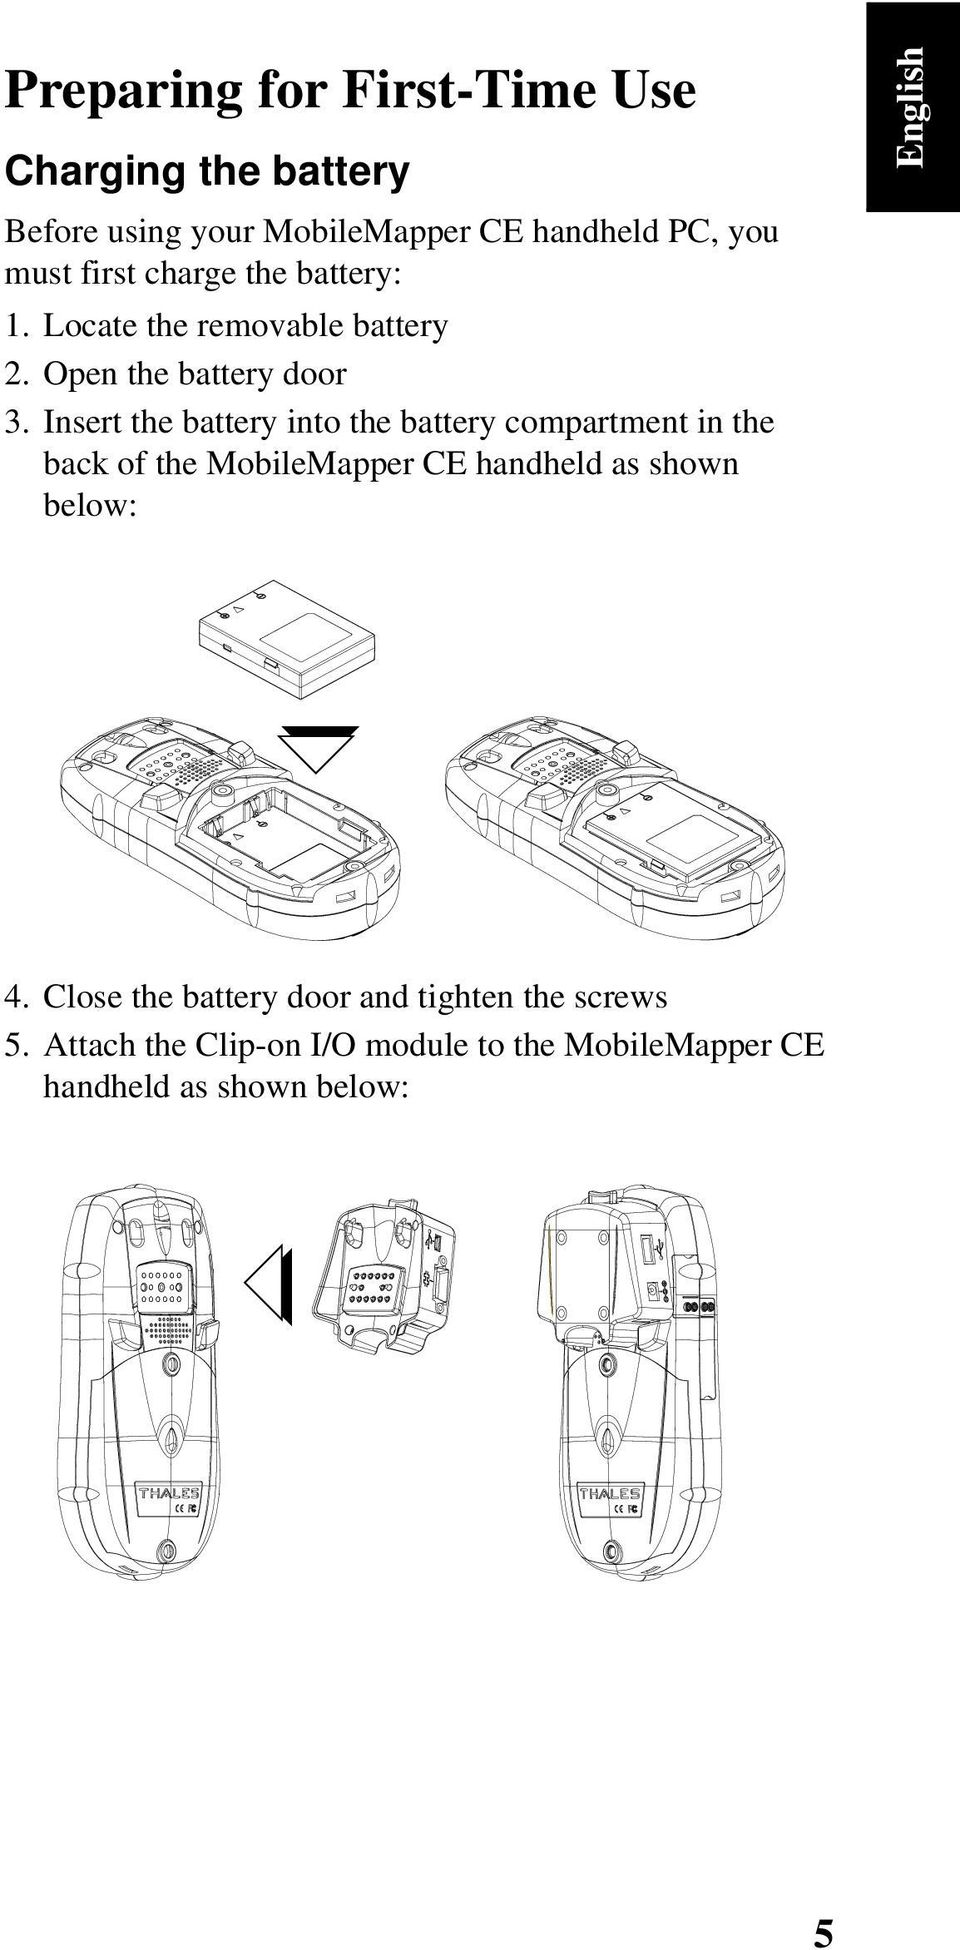 Insert the battery into the battery compartment in the back of the MobileMapper CE handheld as shown below: